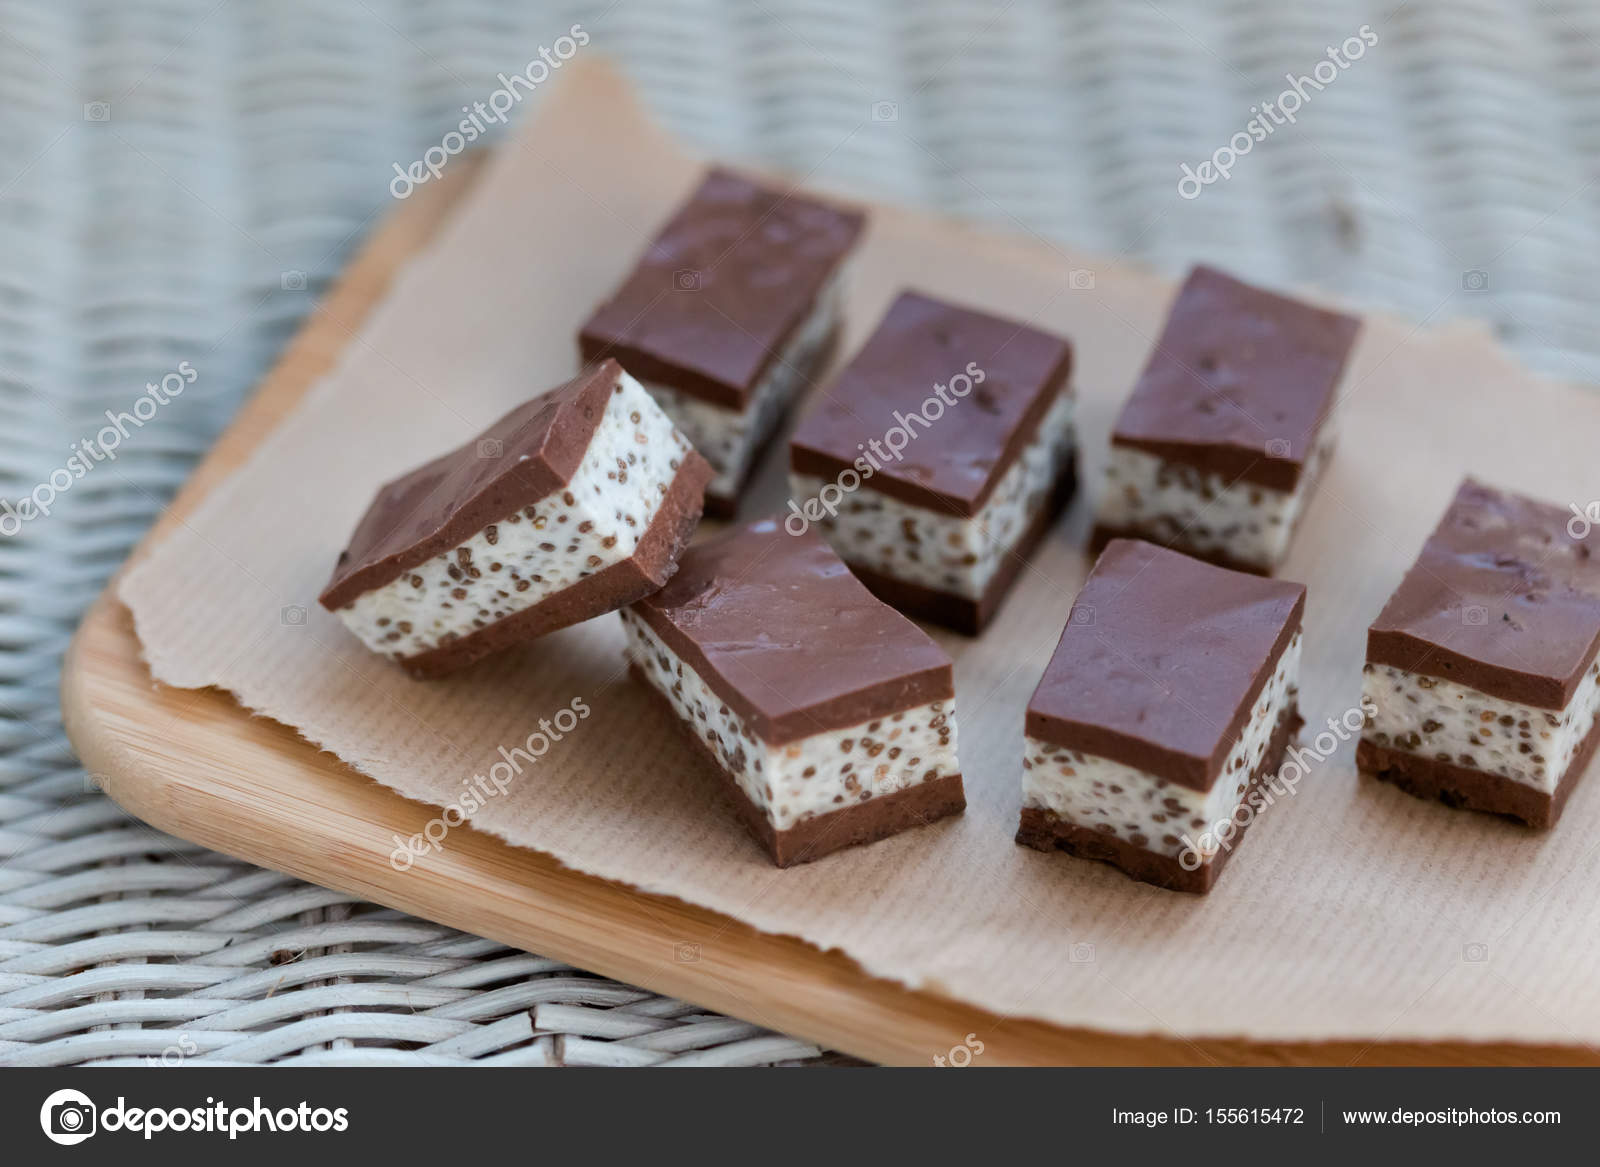 Delicious homemade chocolate covered marshmallow– stock image